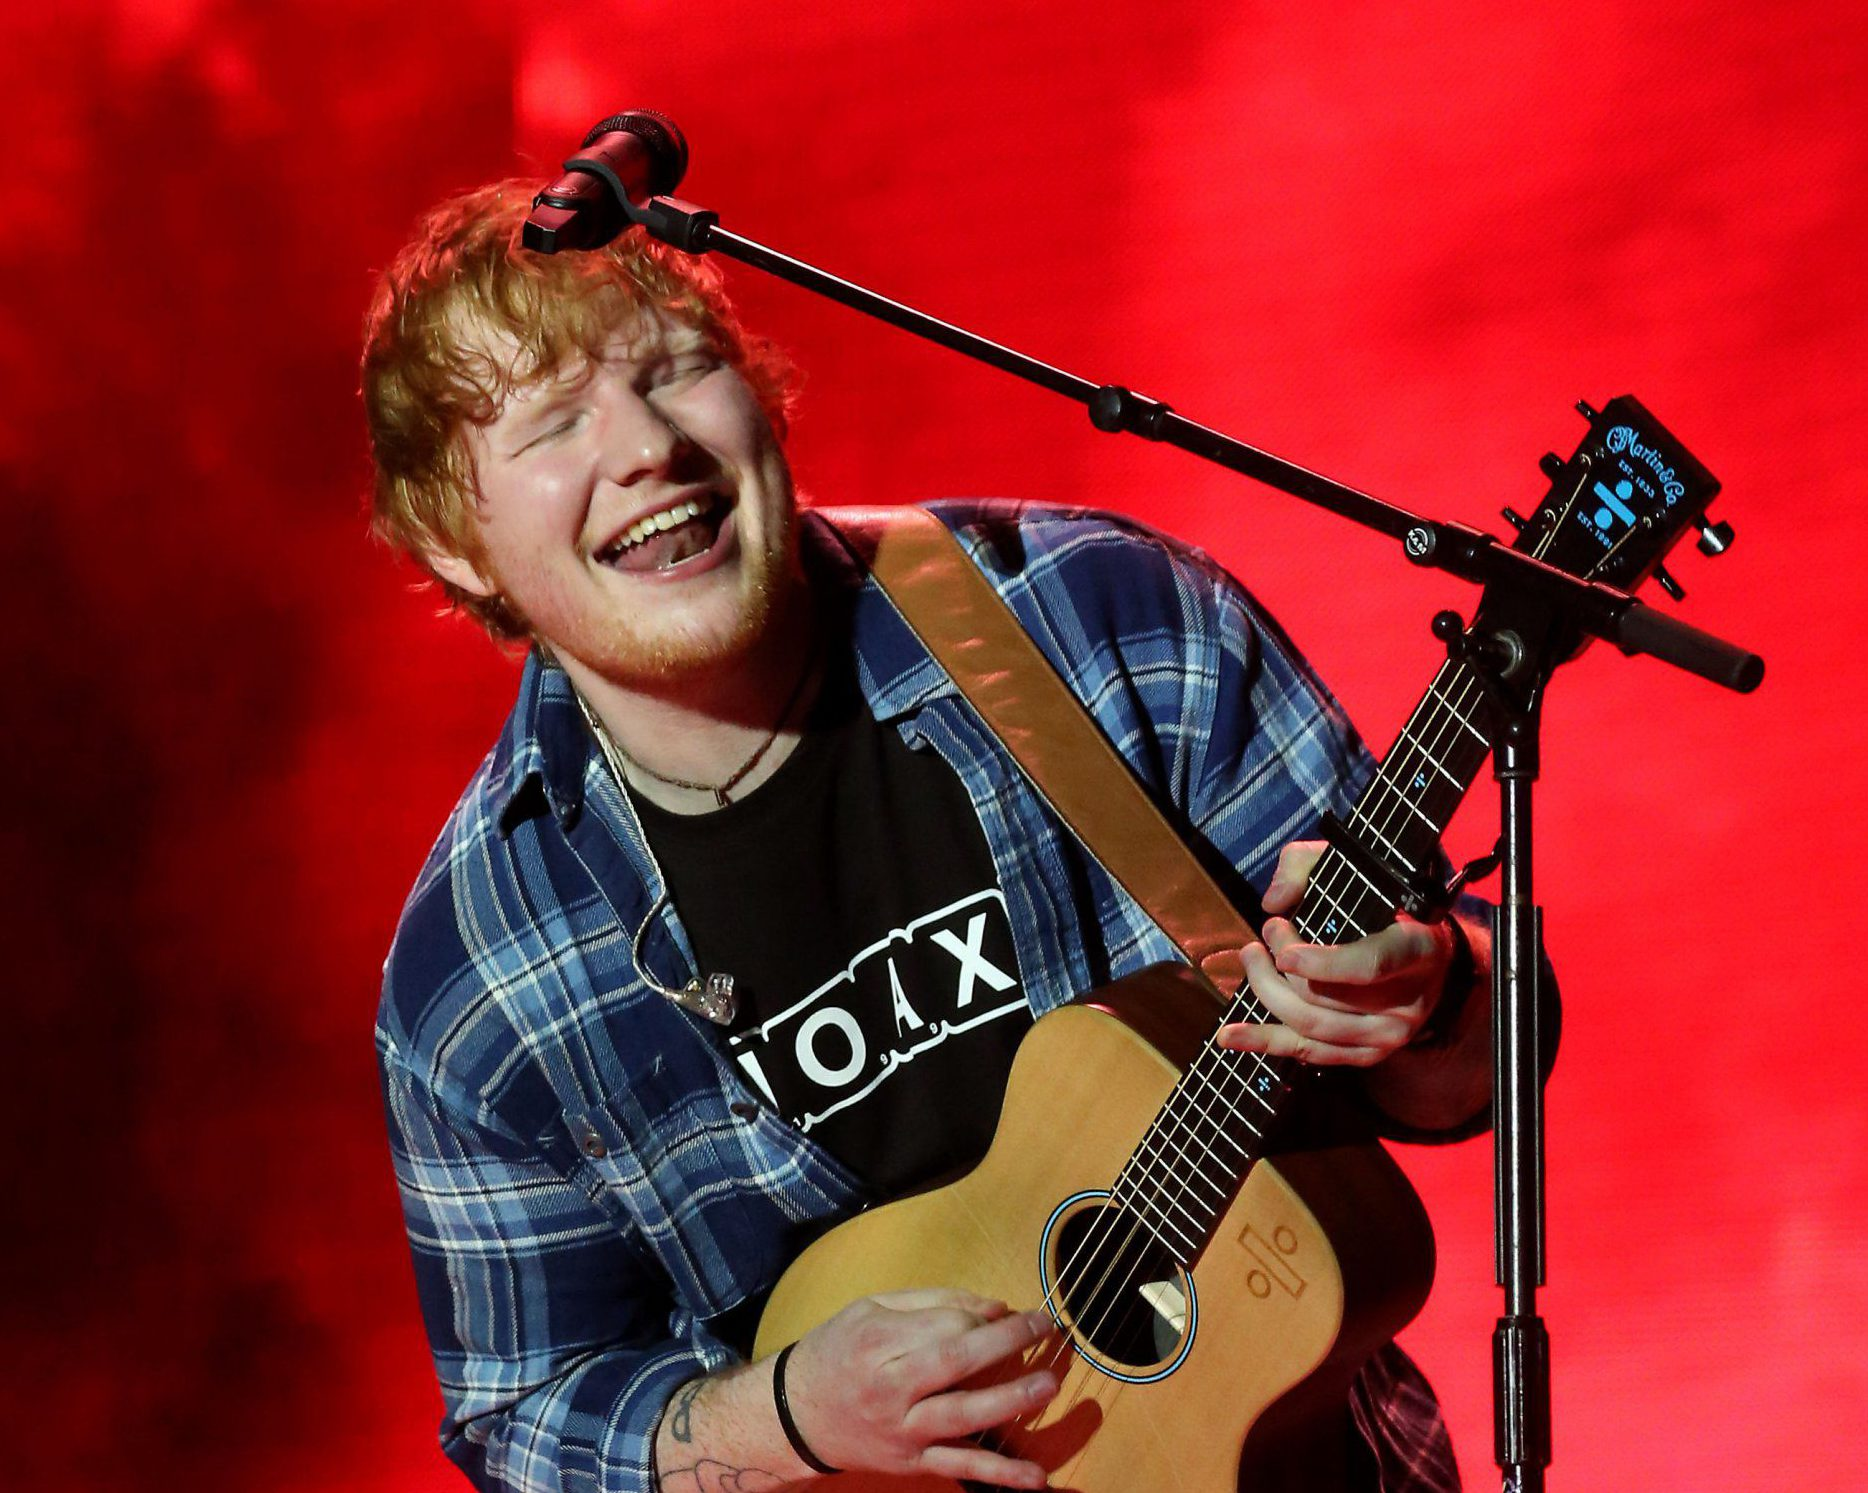 Ed Sheeran notches up another success as he's announced as headliner for War Child Brits Week gig